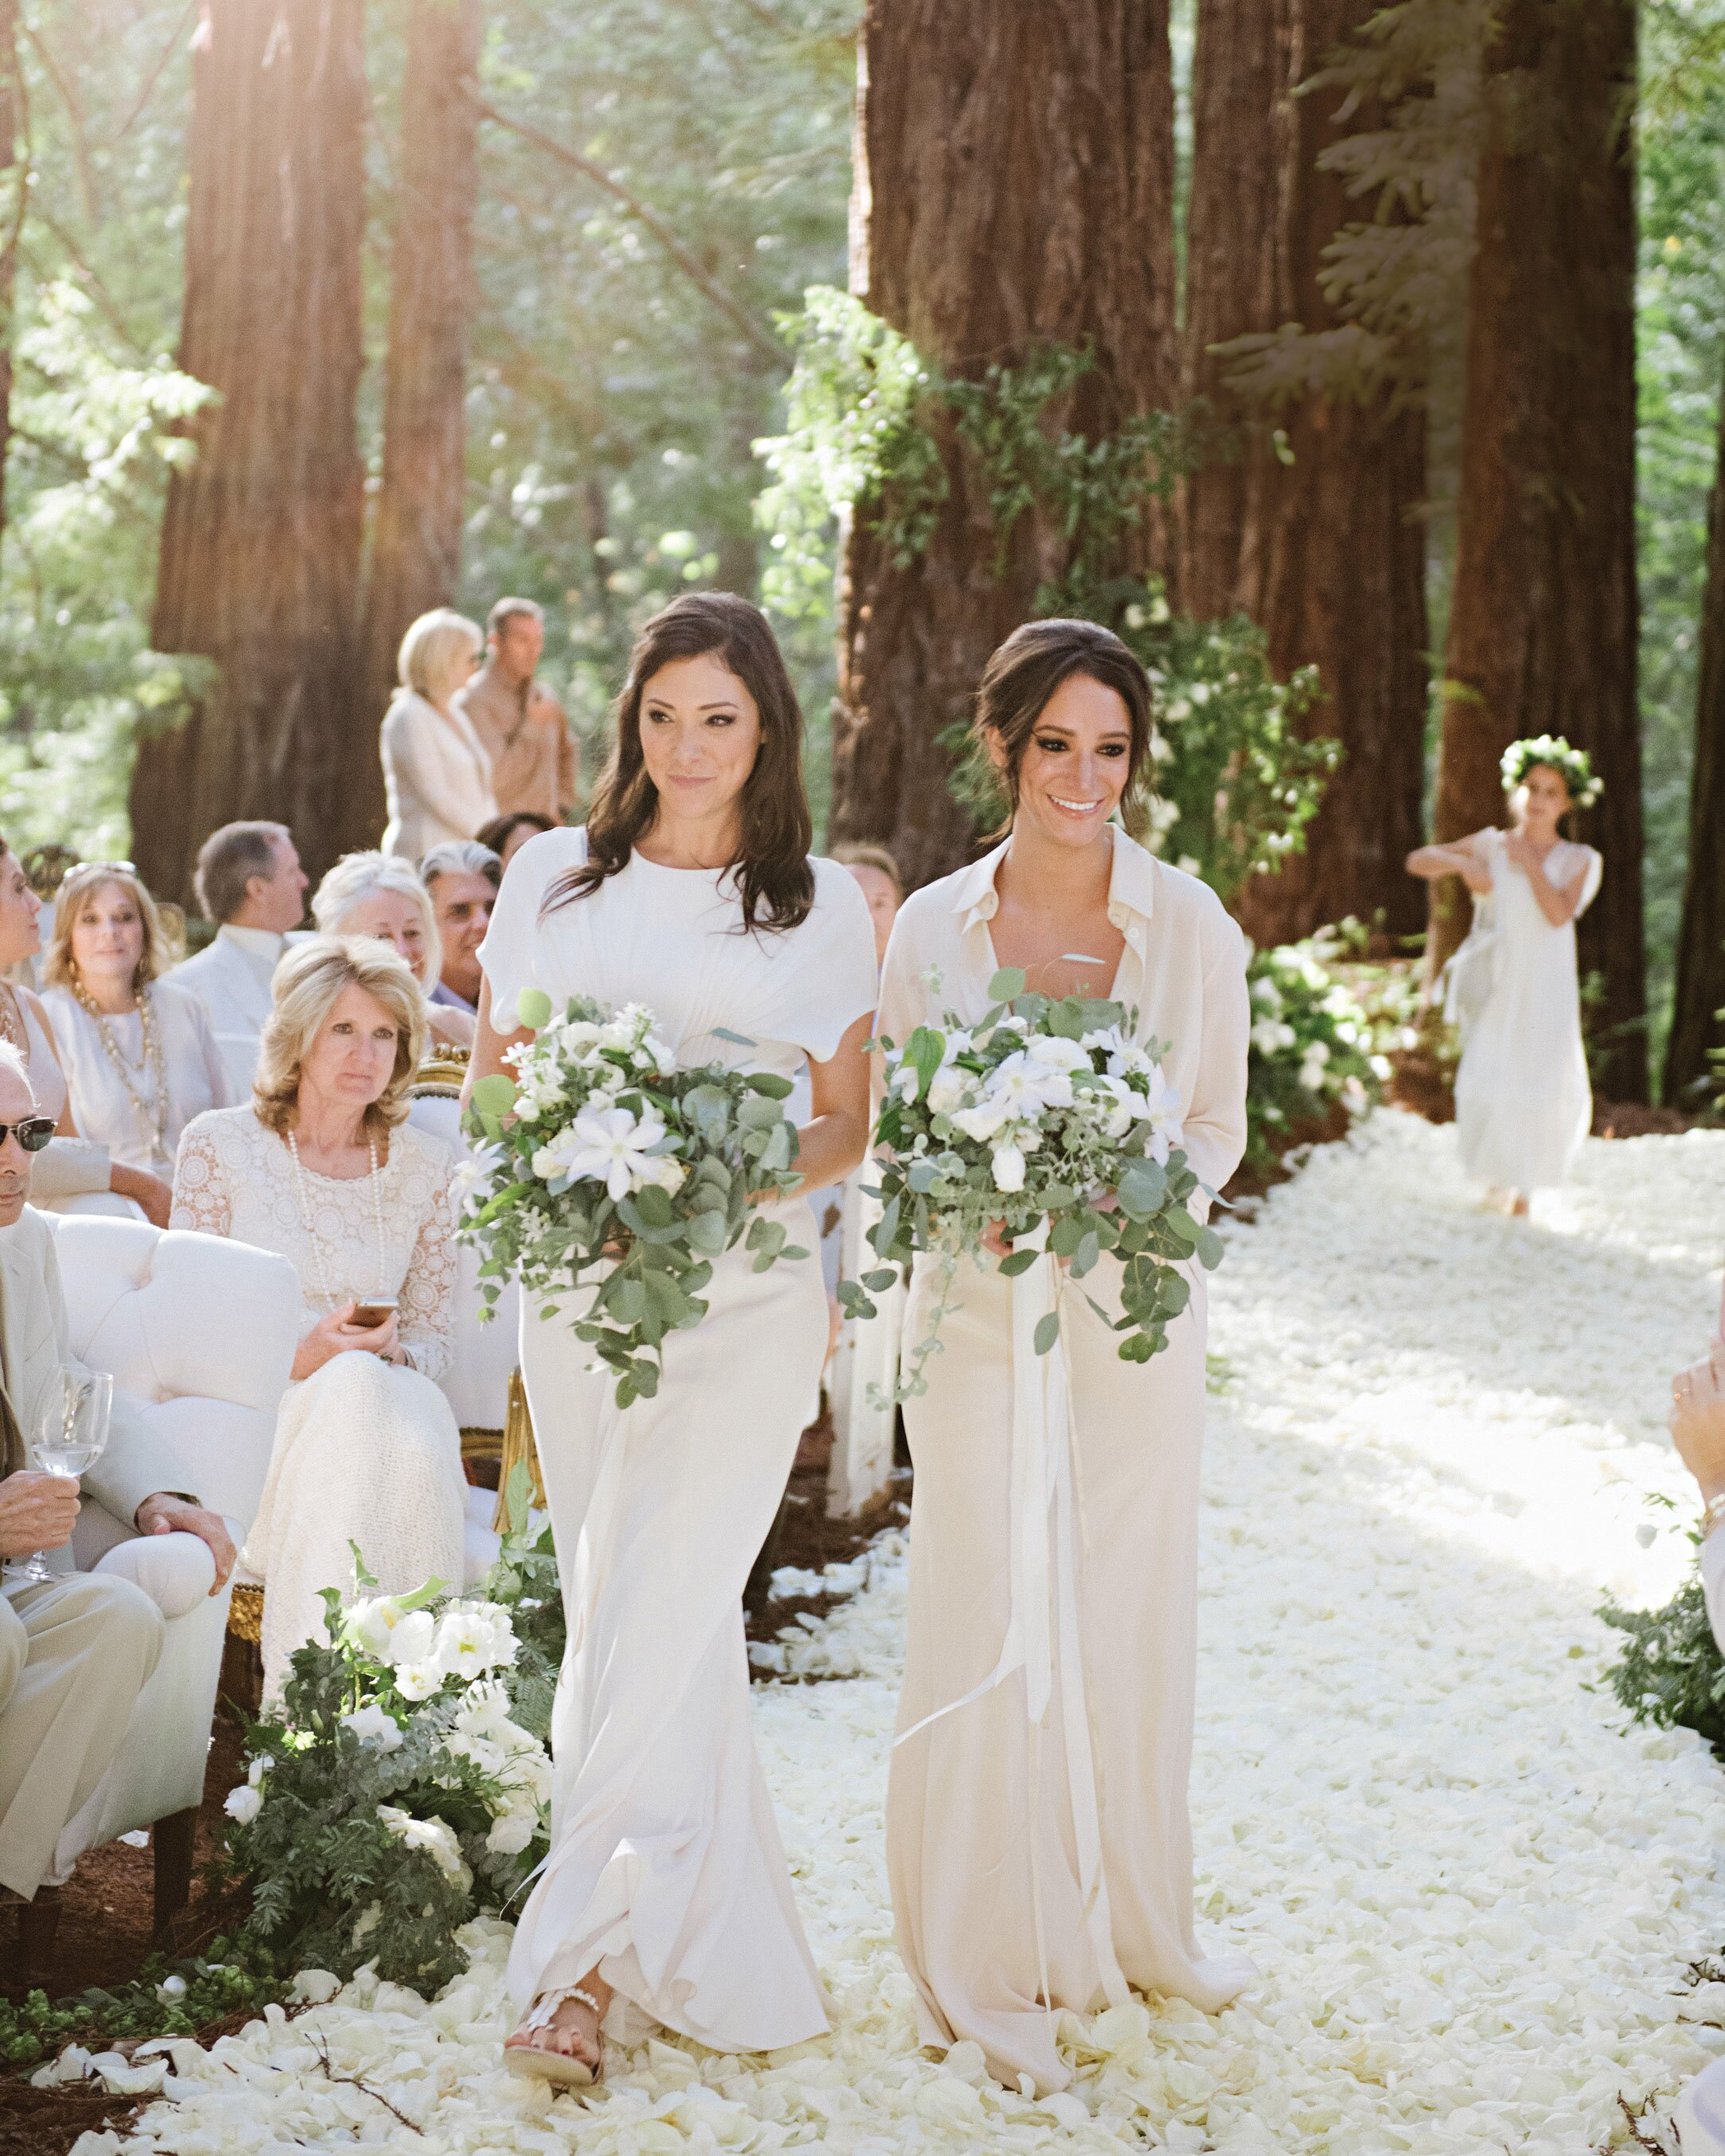 Here S How To Seamlessly Pull Off Having Two Maids Of Honor